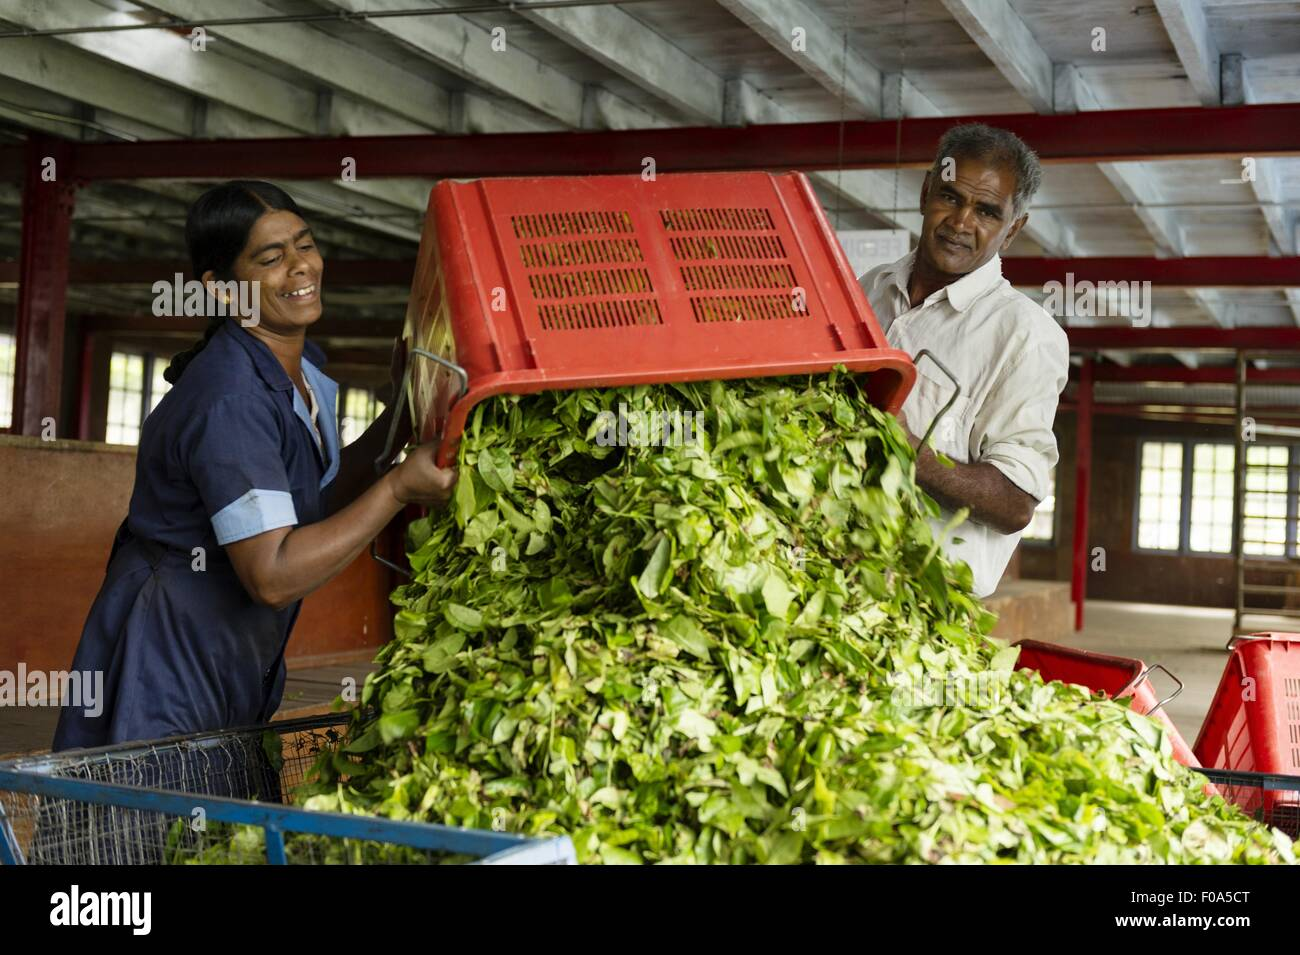 Man and woman dumping tea leaves from basket, Nuwara Eliya, Sri Lanka - Stock Image